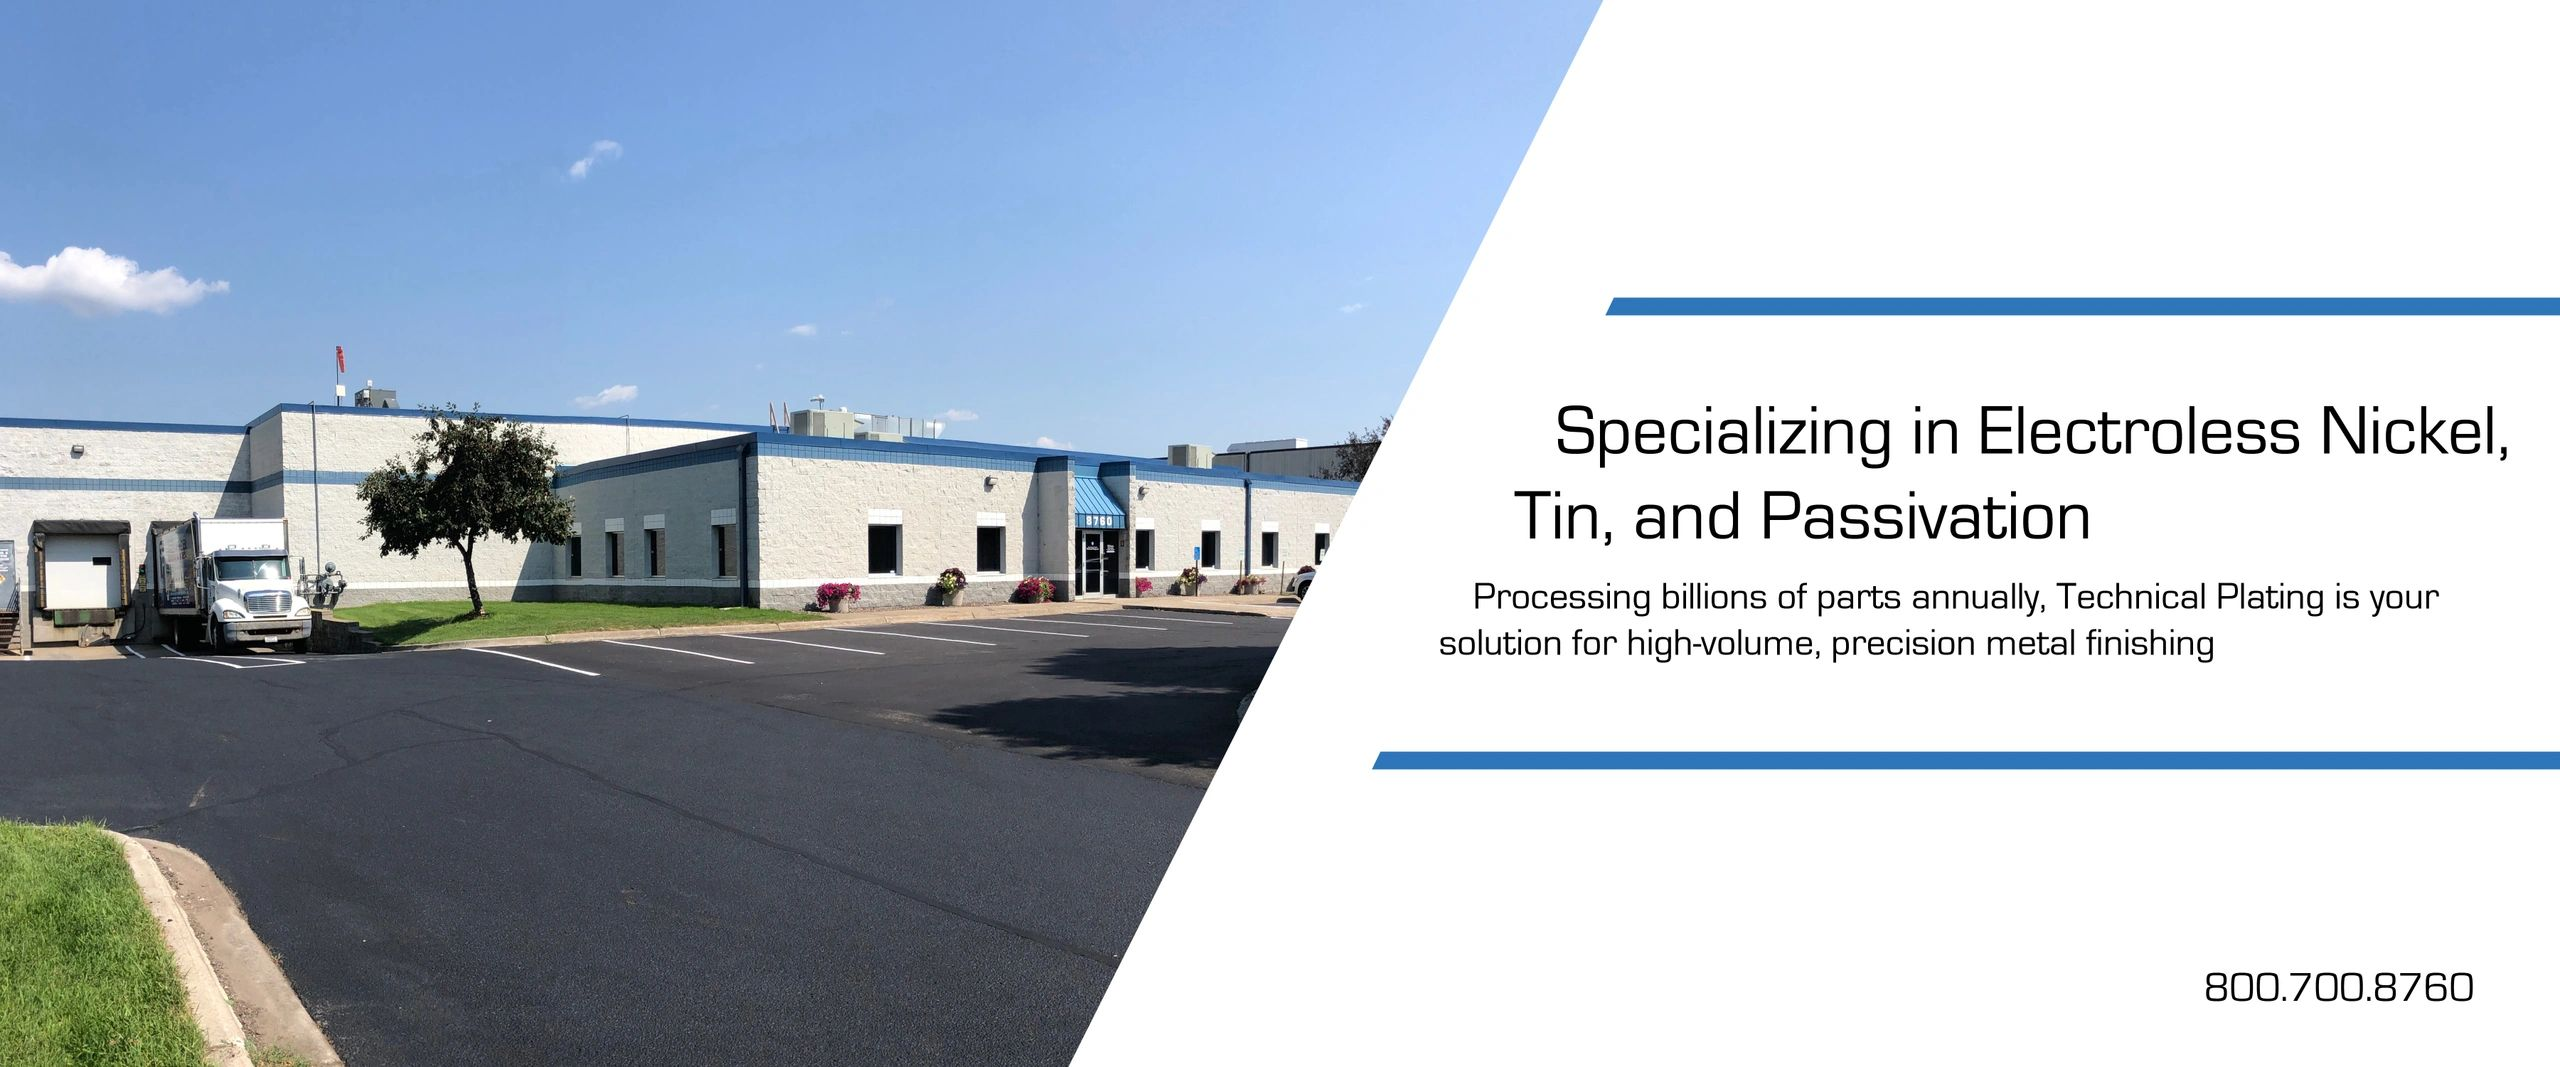 Tin Plating, Nickel Plating - Technical Plating, Inc